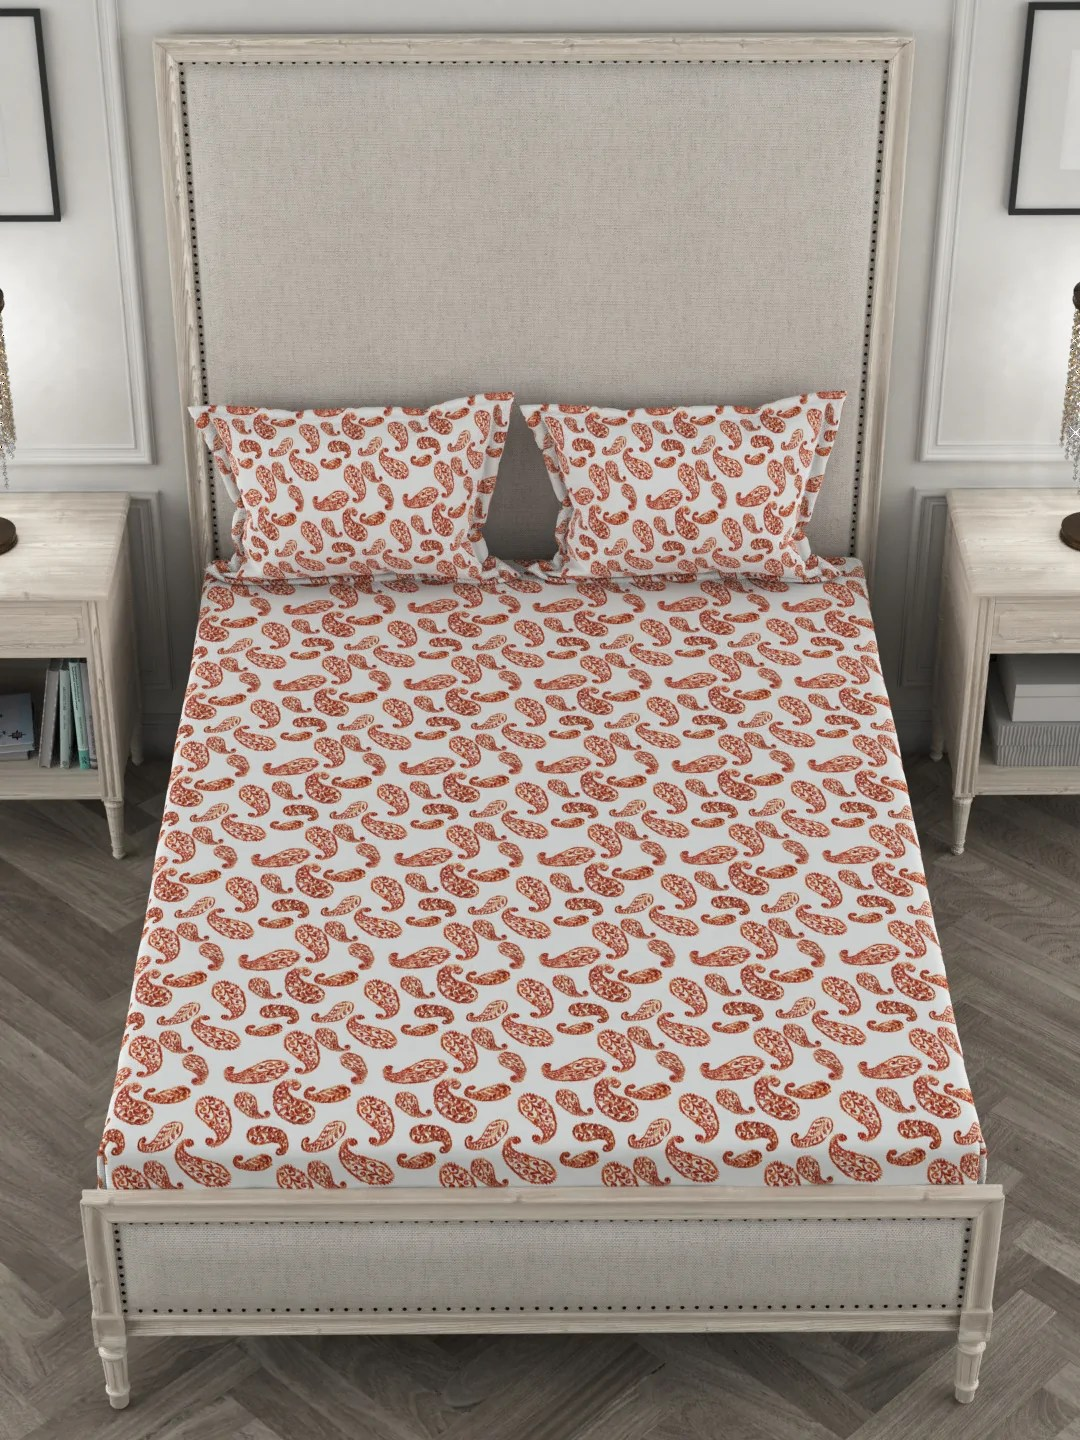 Luxury Cotton Bed Sheets From India S Best Bed Sheet Brand Amouve